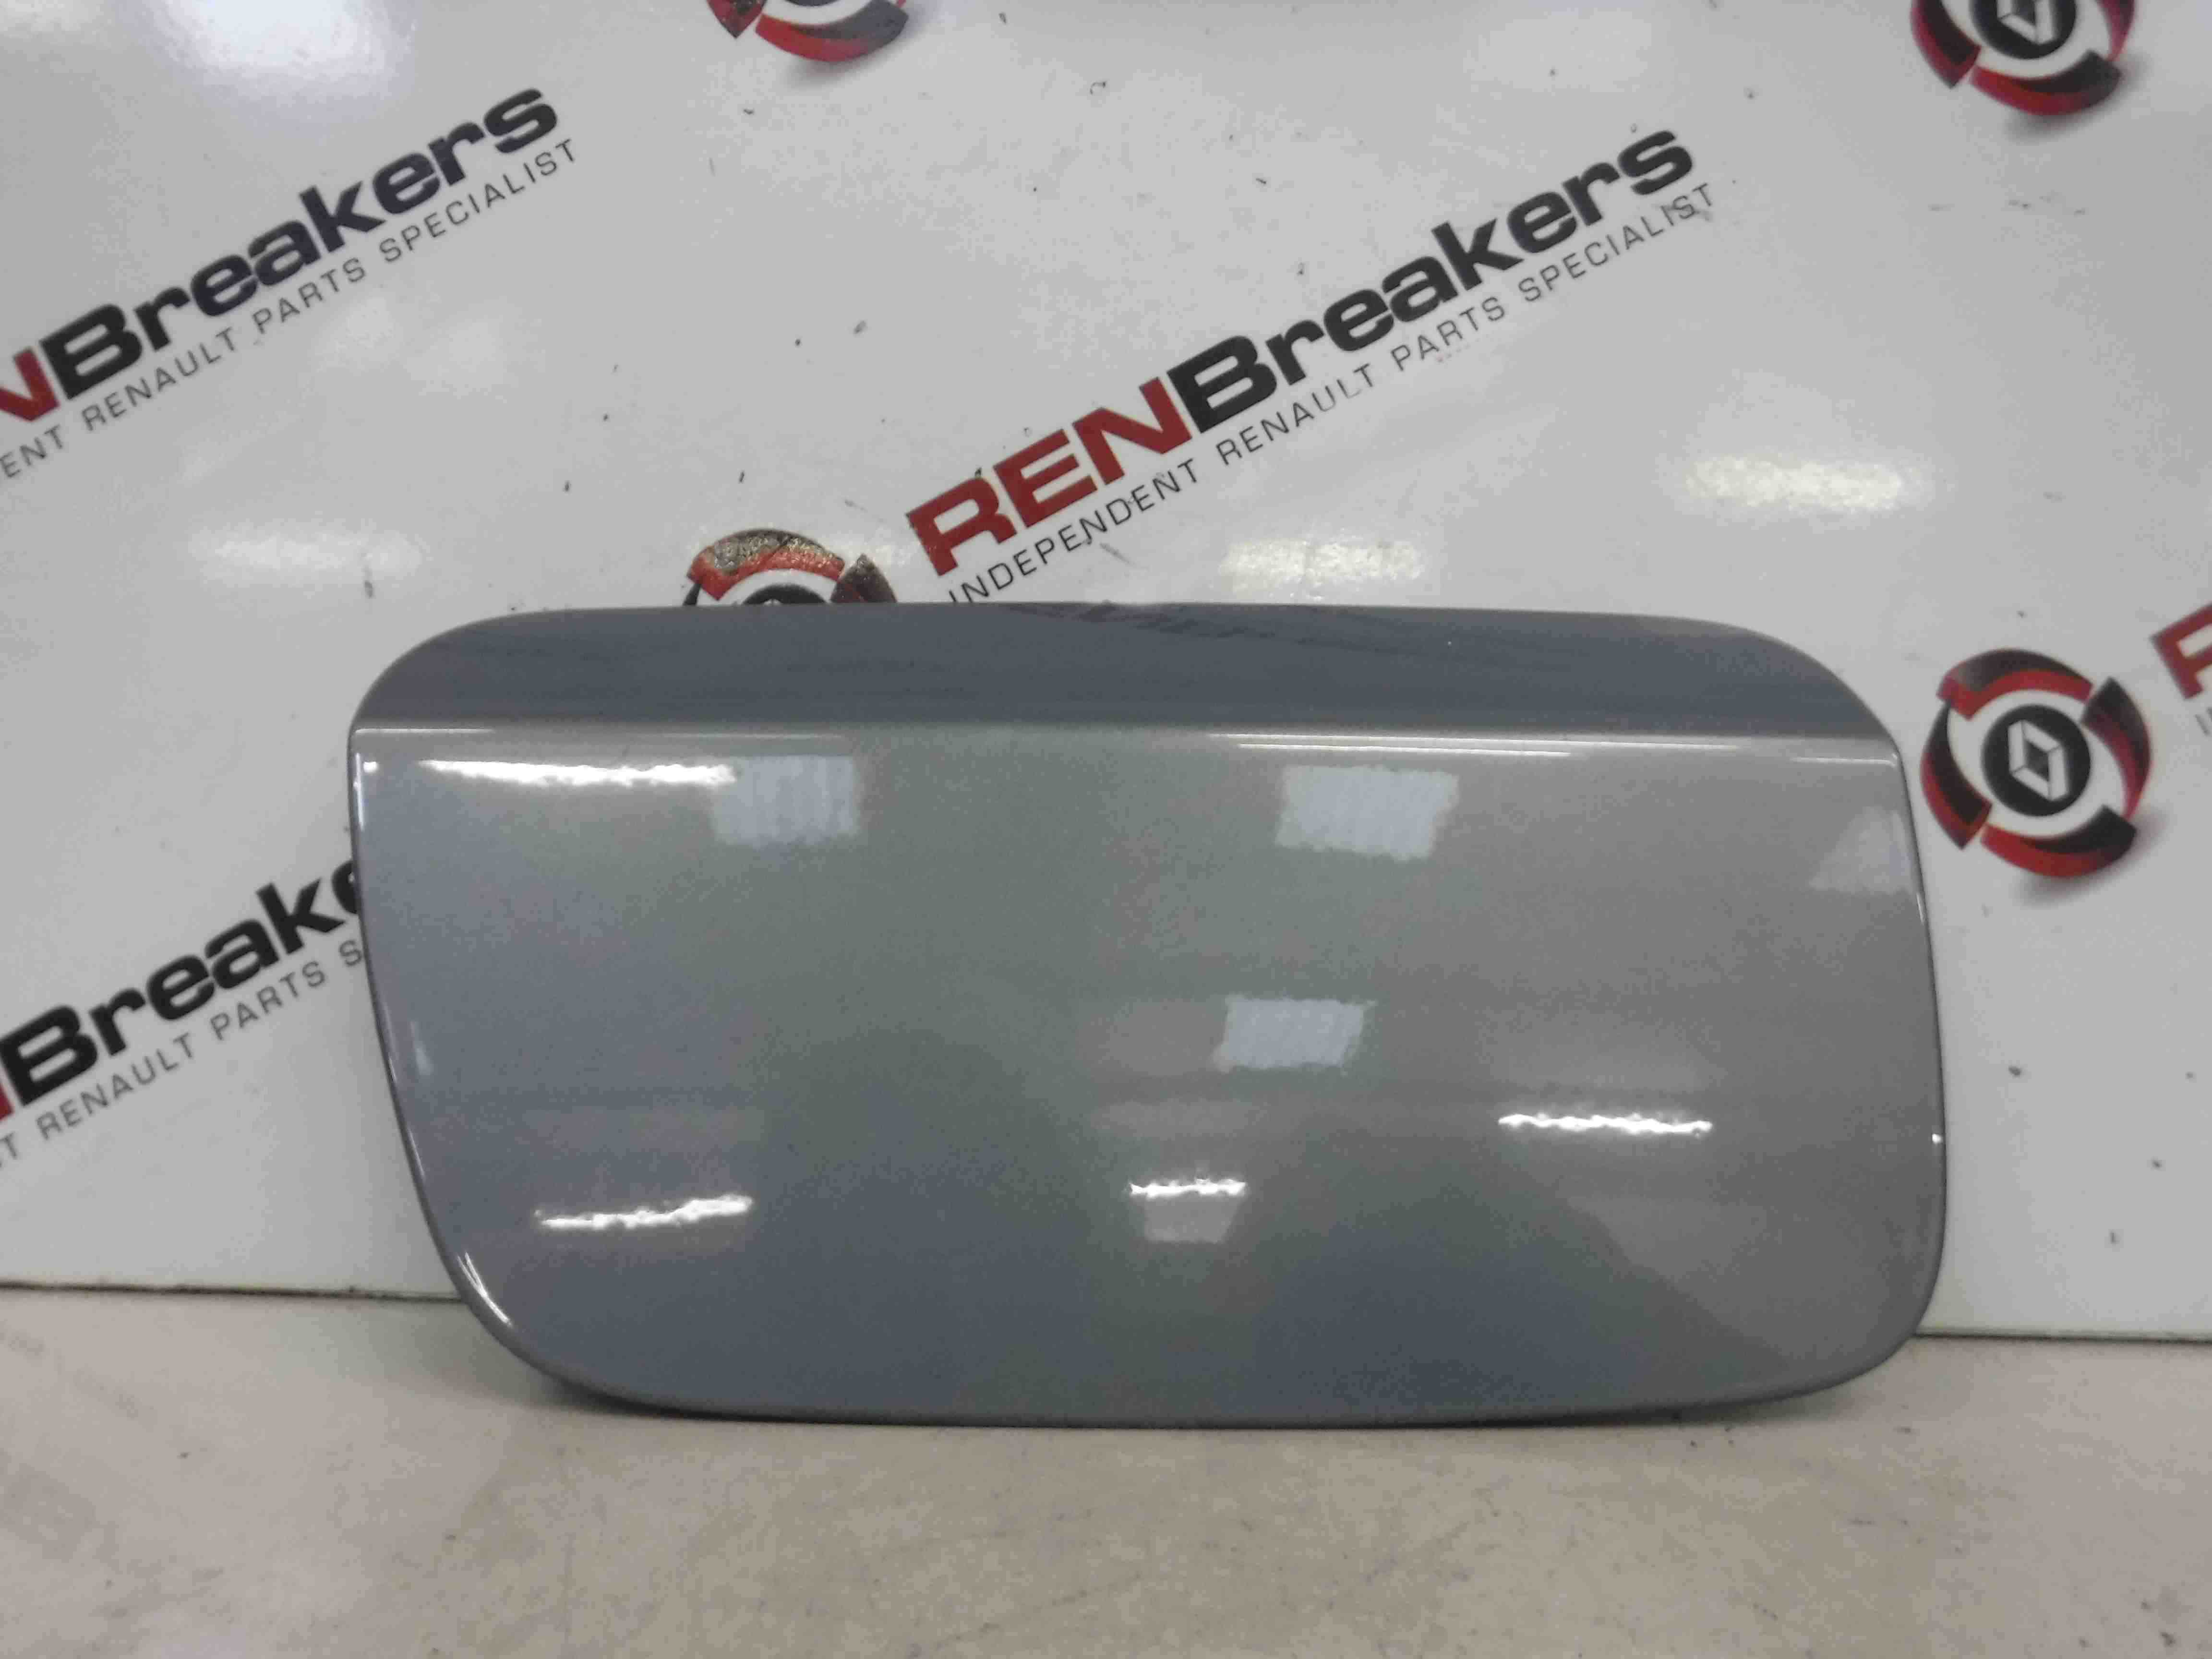 Renault Laguna 2001-2005 Fuel Flap Cover Purple Silver TED47 8200002160